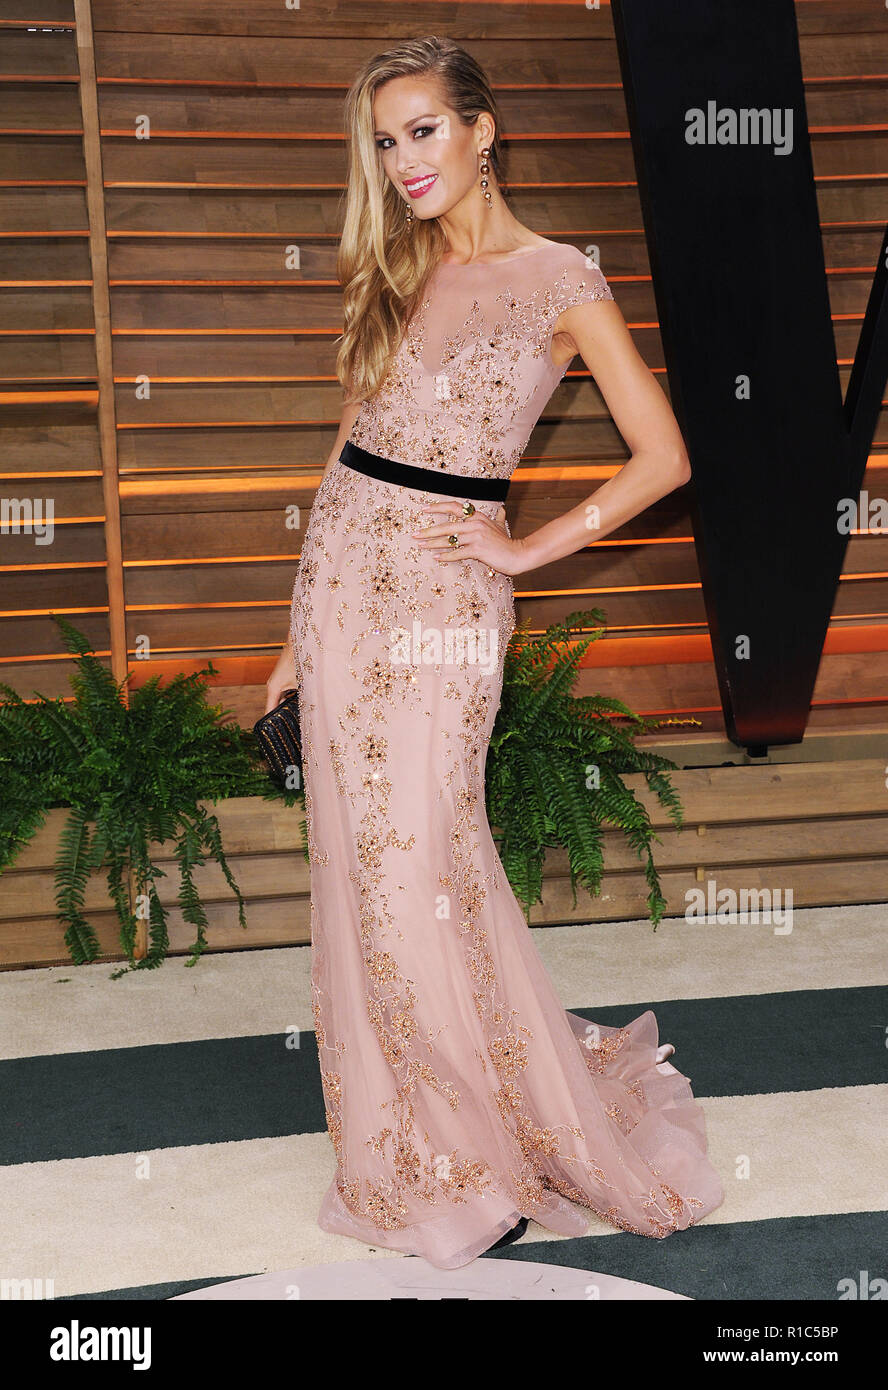 Petra Nemcova 238 Arriving At The Vanity Fair Oscars 2014 Party 8680 Sunset Boulevard West HollywoodPetra Event In Hollywood Life